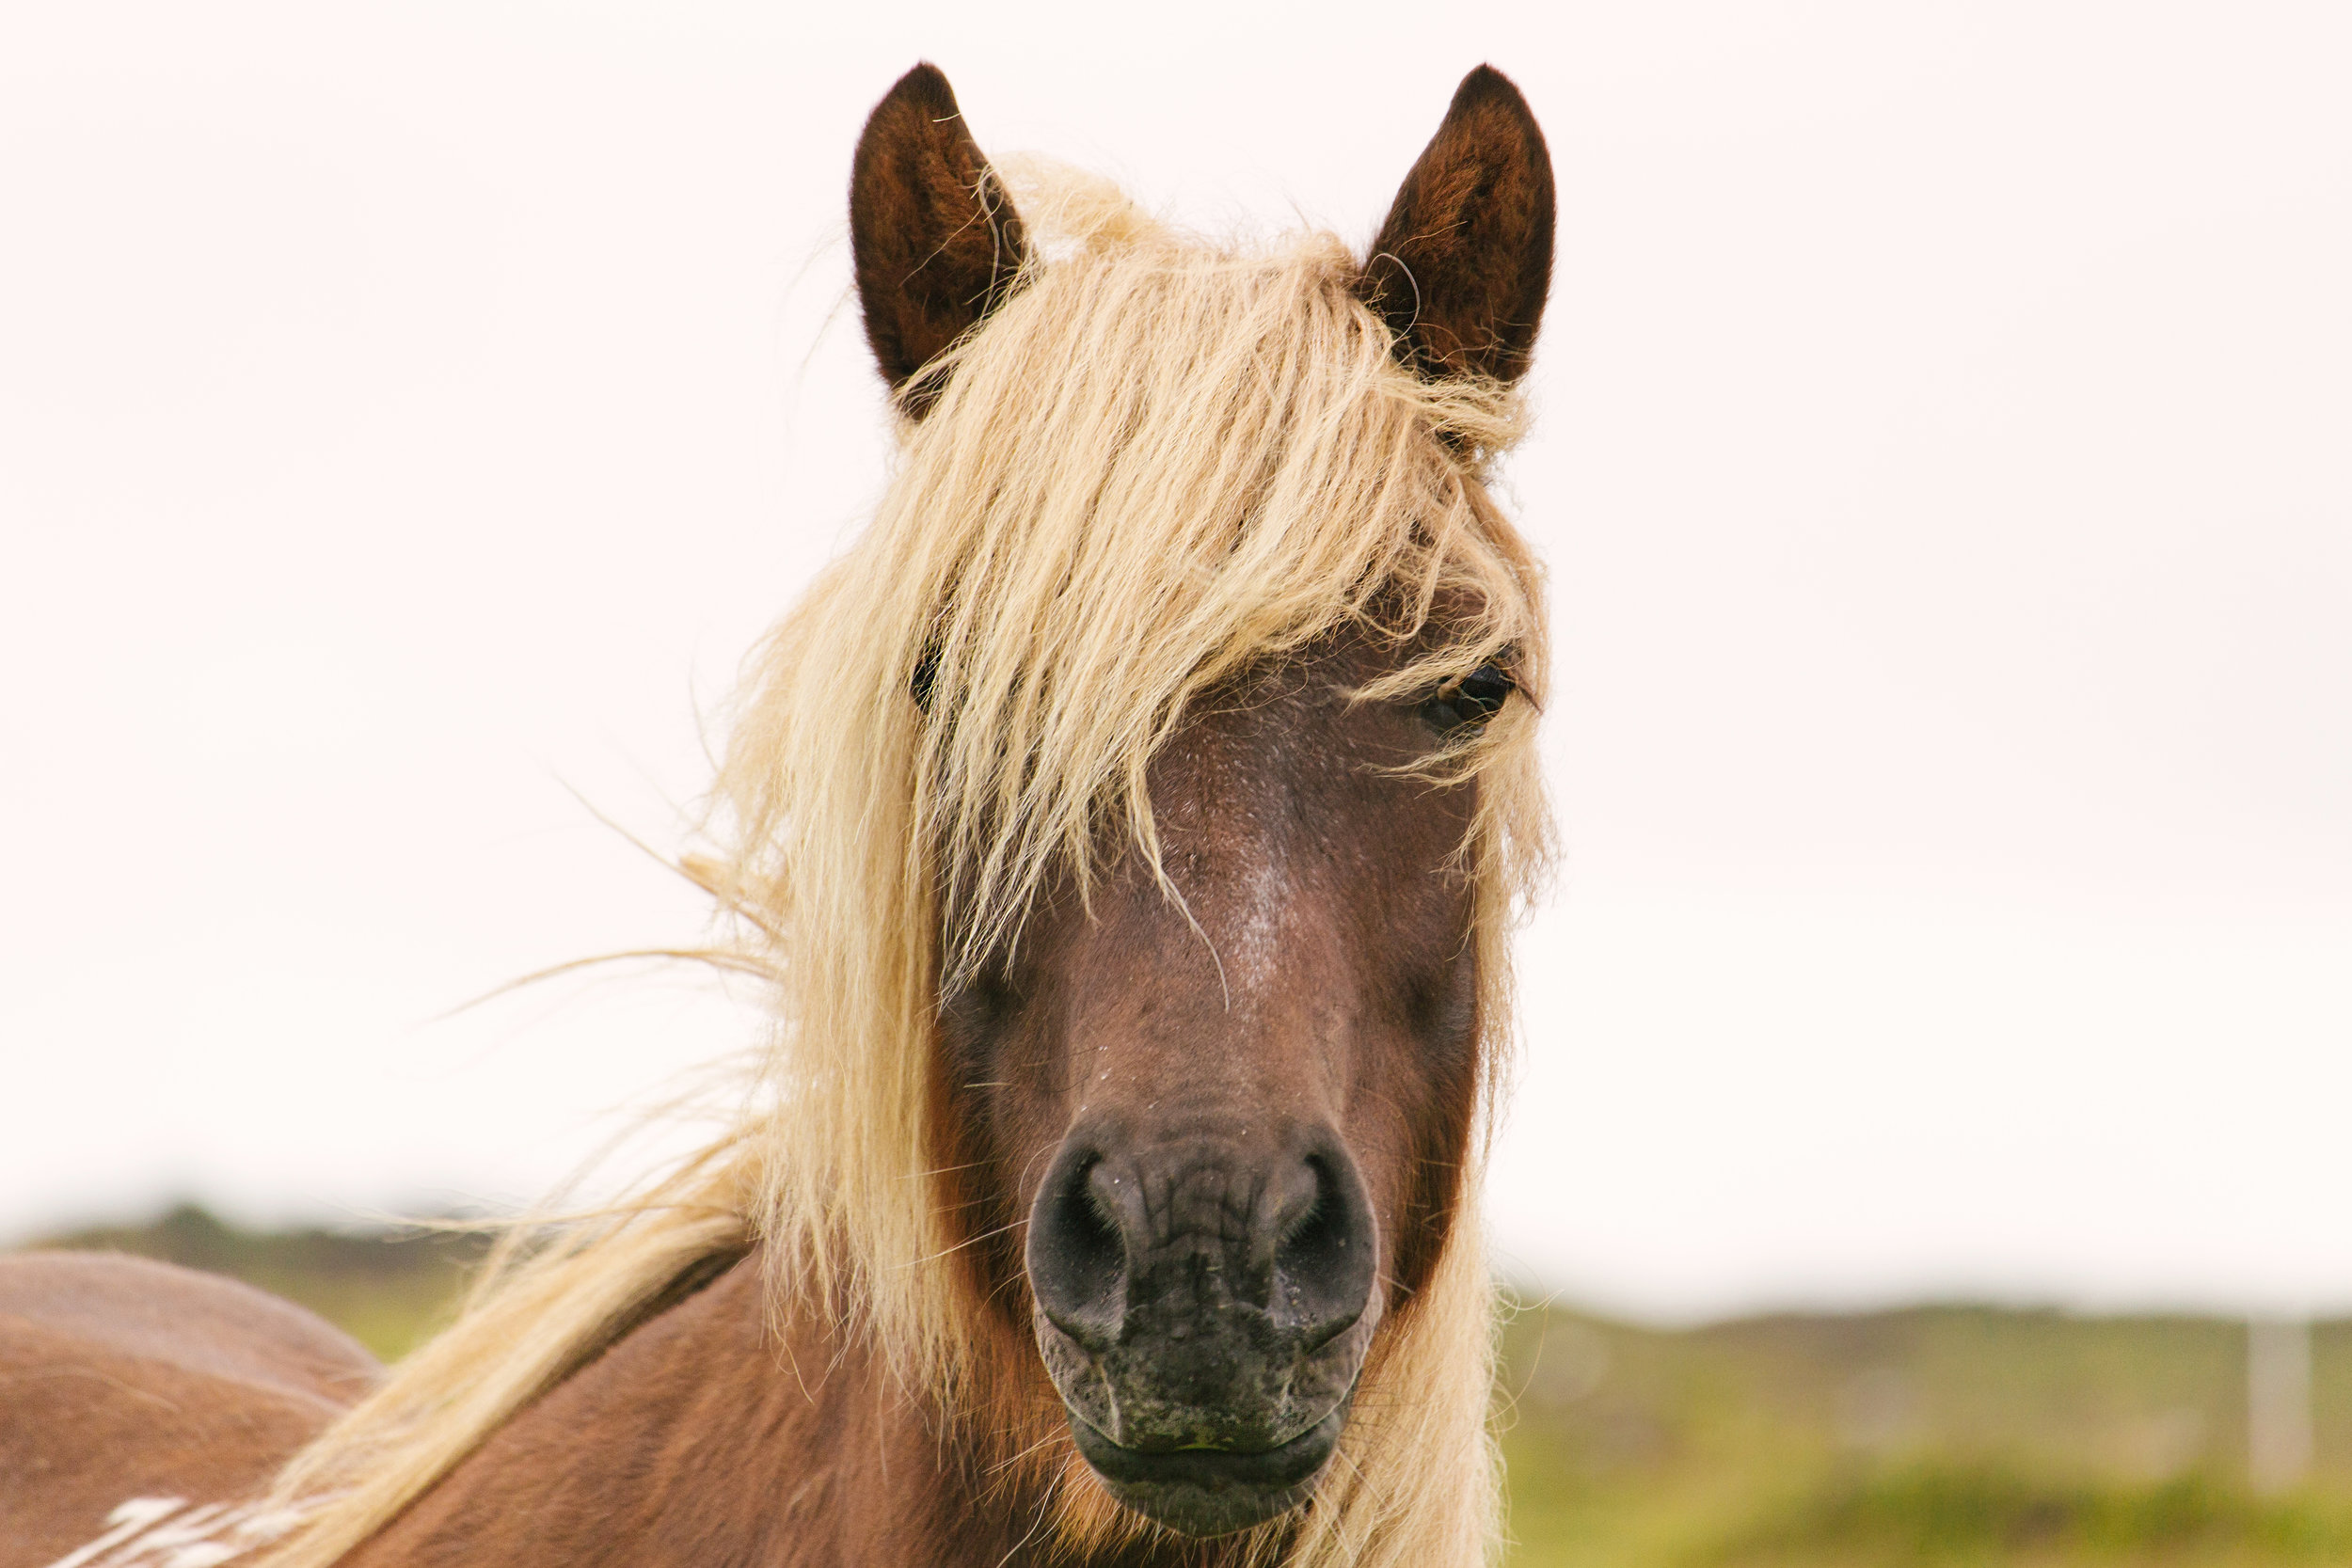 Animal Rehabilitation - Horses, and even other animals such as dogs, can benefit from the significant healing benefits of CranioSacral Therapy.